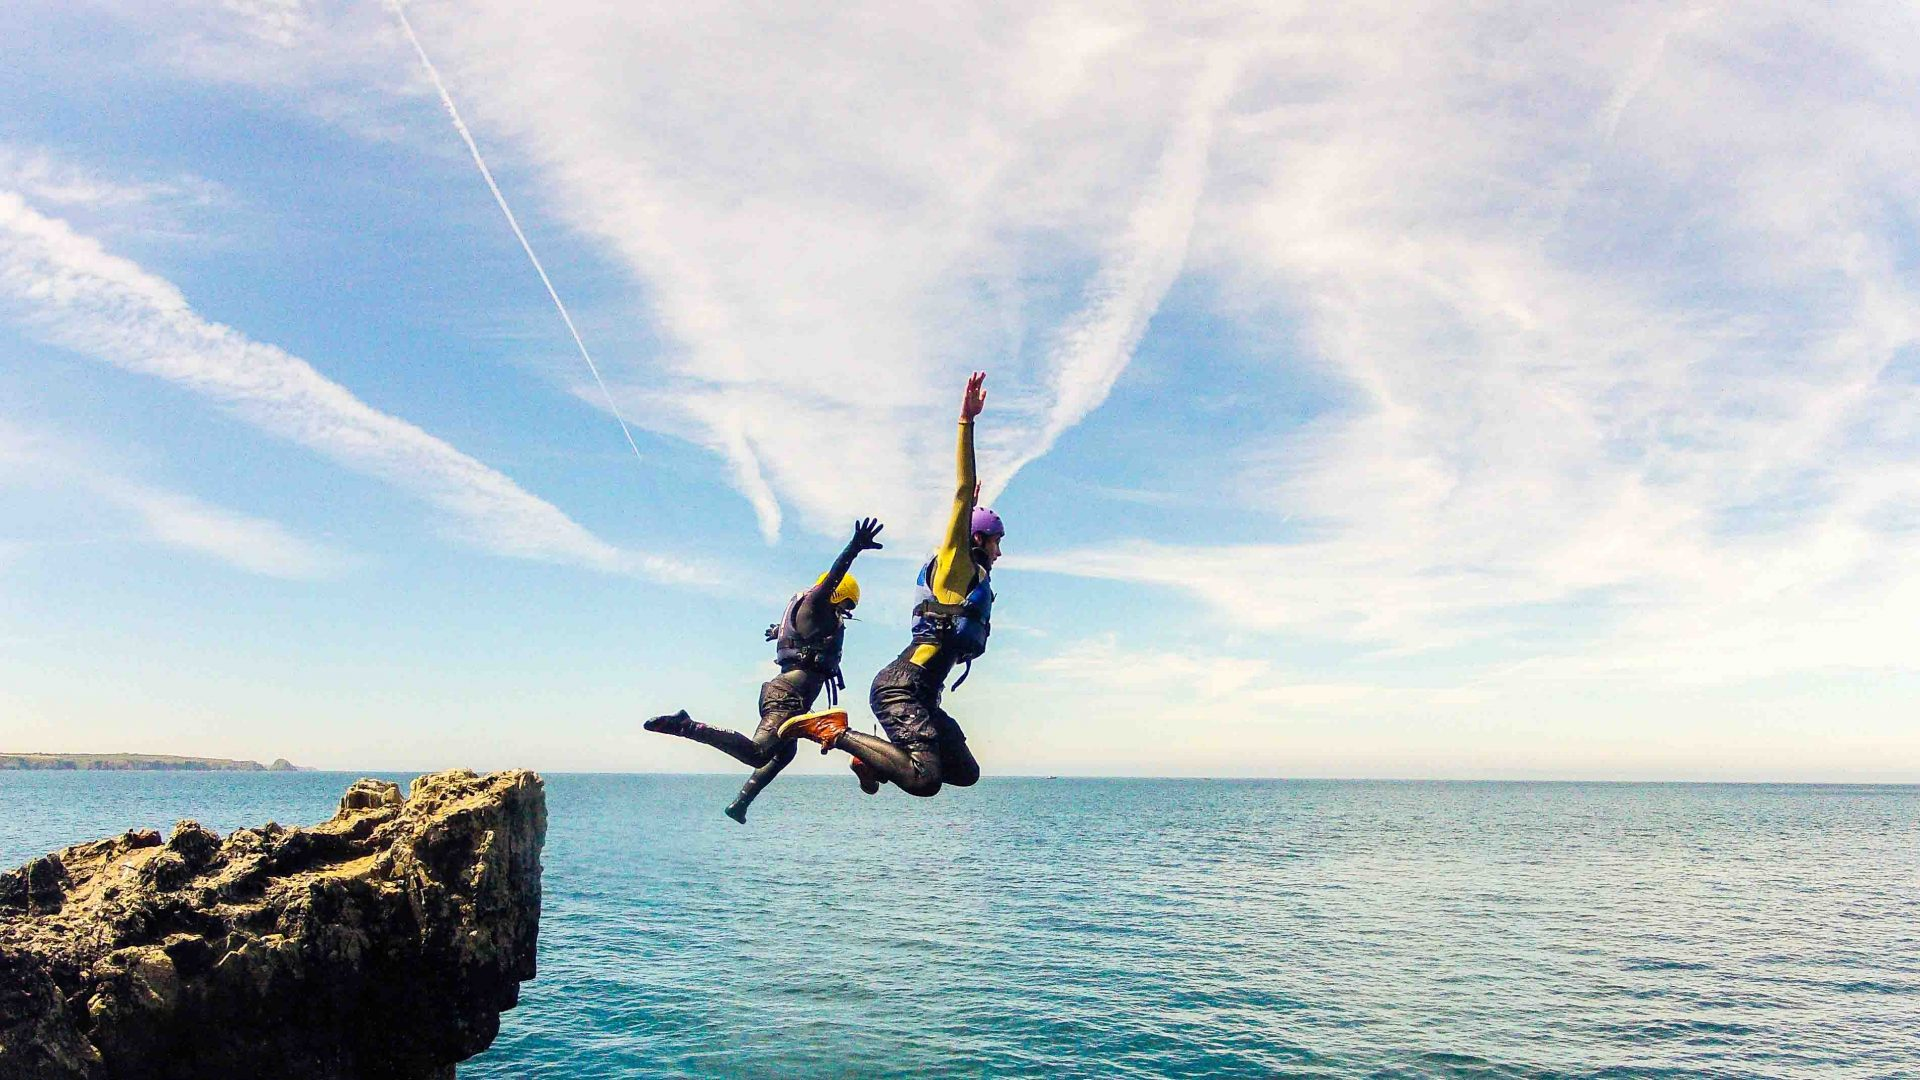 Coasteering: Why everyone's throwing themselves off a cliff